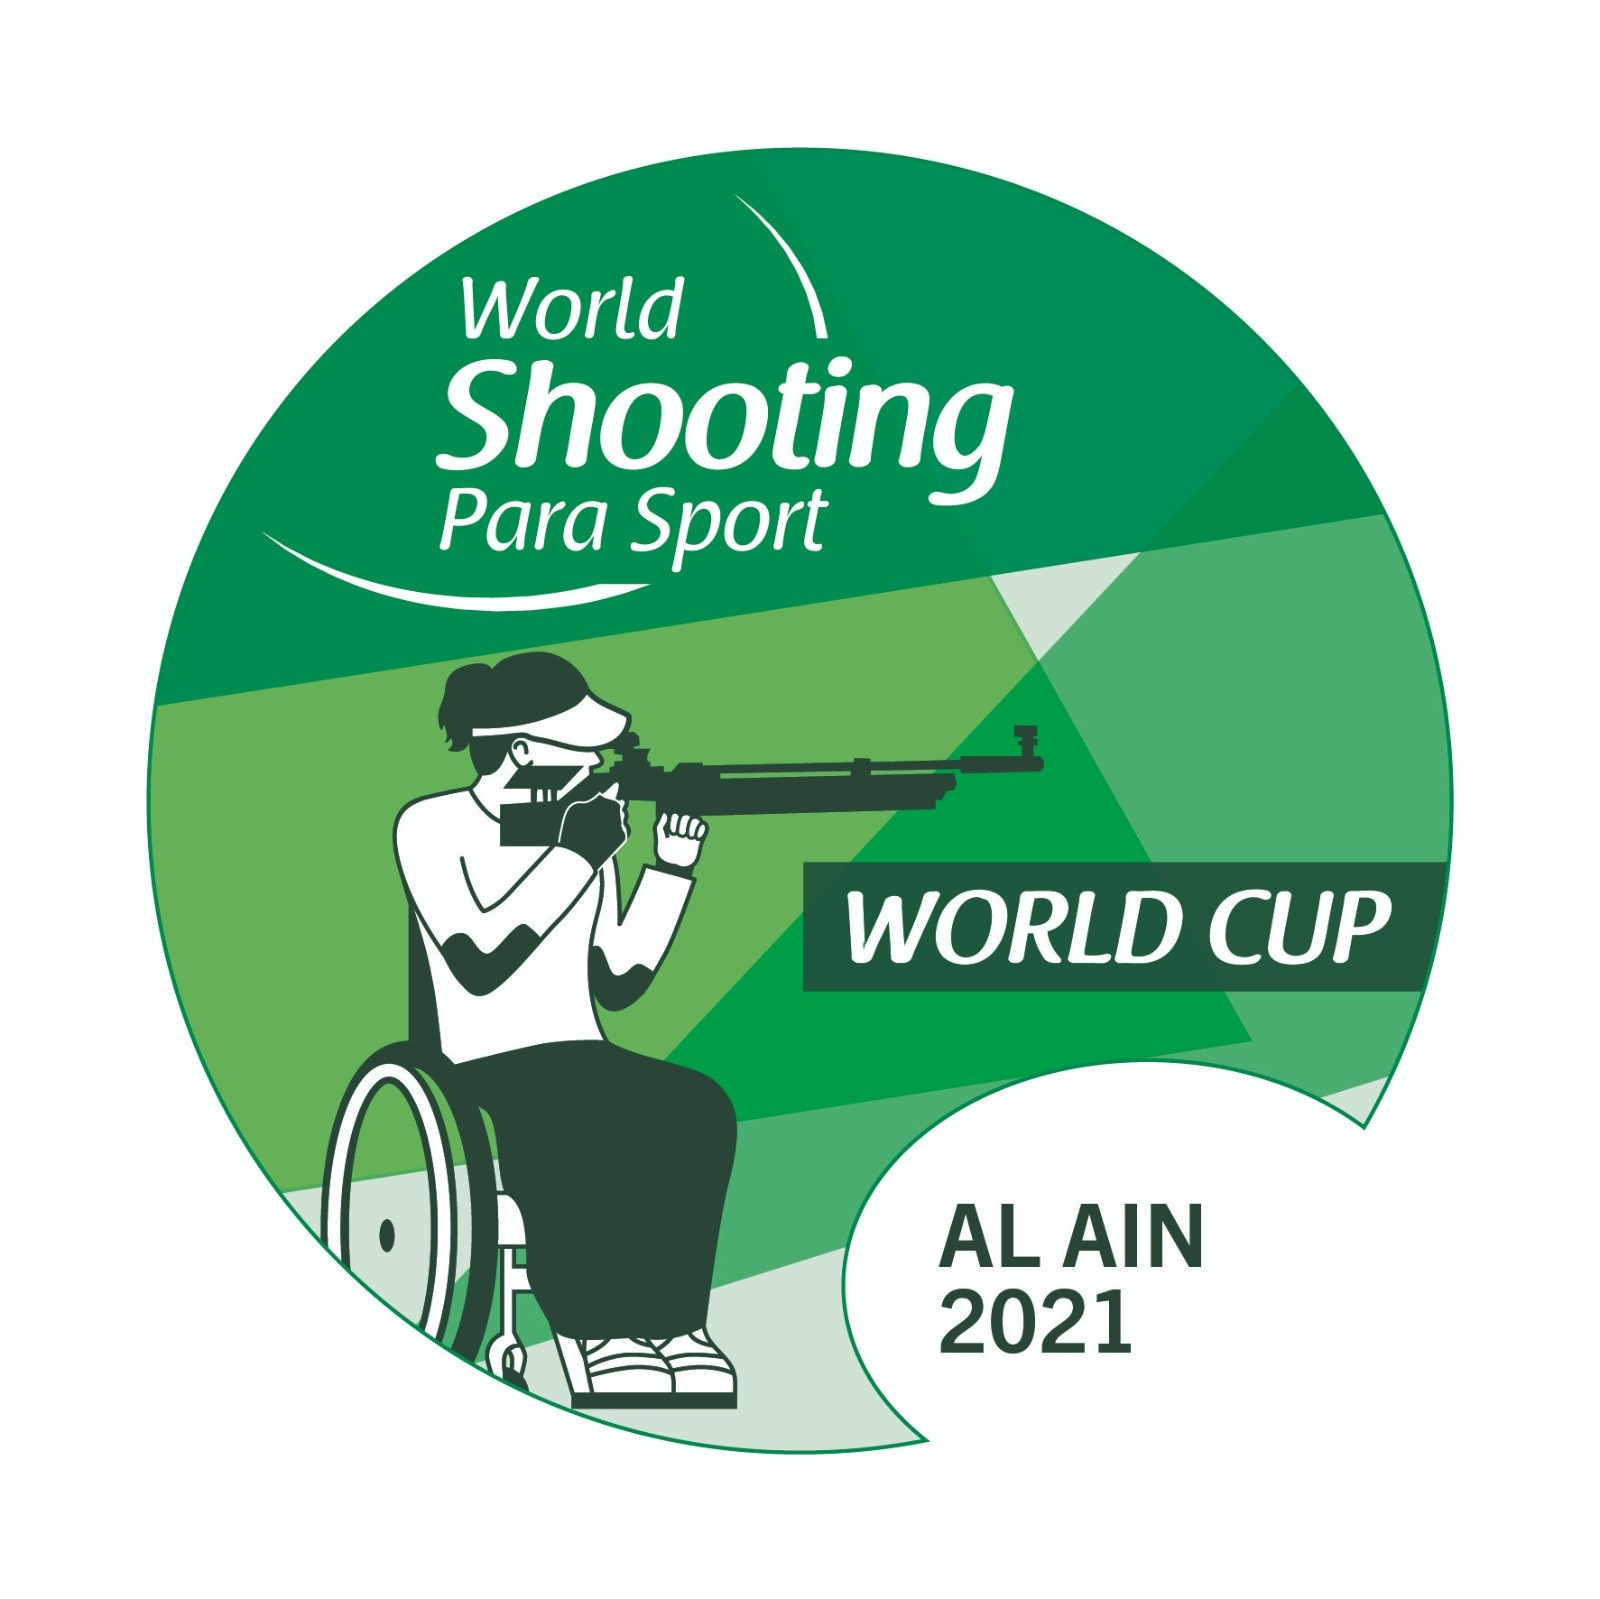 Ukraine finish top of medal table after final day of World Shooting Para Sport World Cup